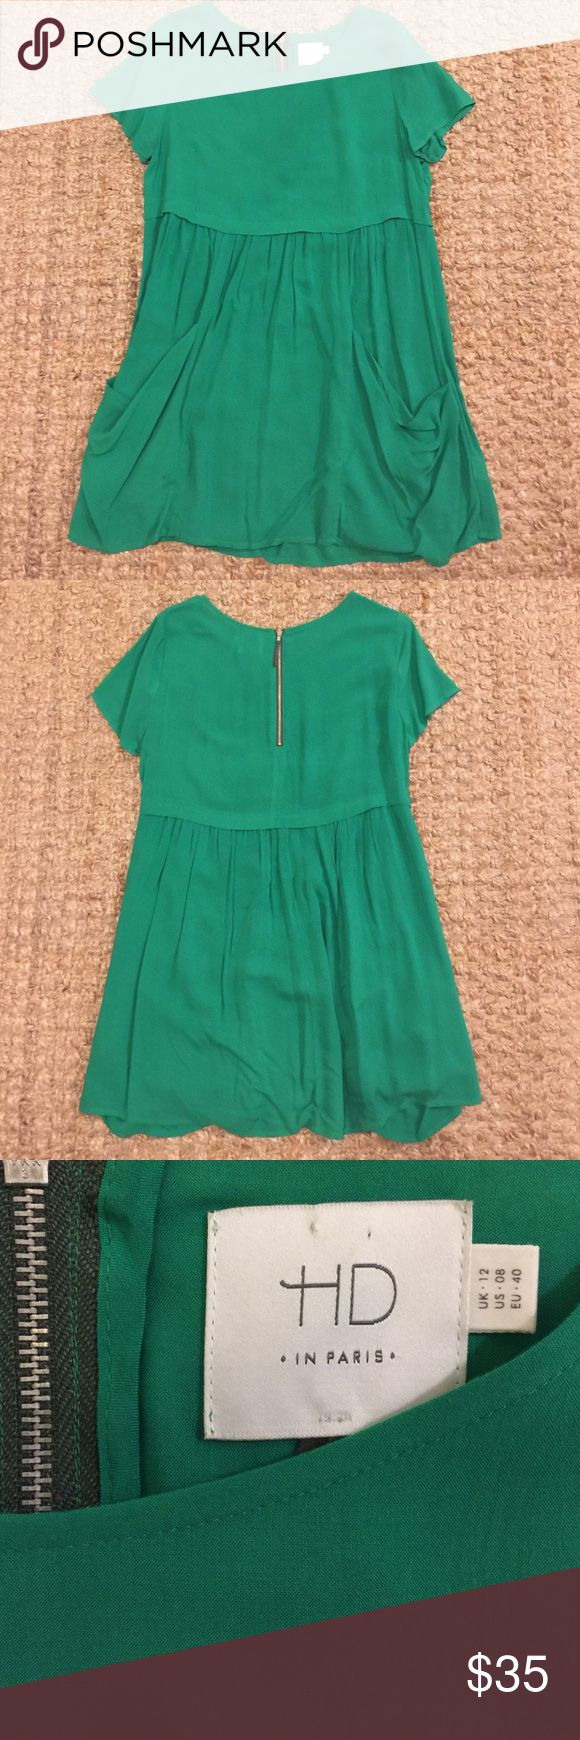 Anthropologie HD Women's Green Dress This casual dress was purchased at Anthro and worn twice. It features two drape-y front pockets and a back half-zip. In the photos it looks a little turquoise but it's true green. Shirt dress is perfect for casual days with leggings. Anthropologie Dresses Midi